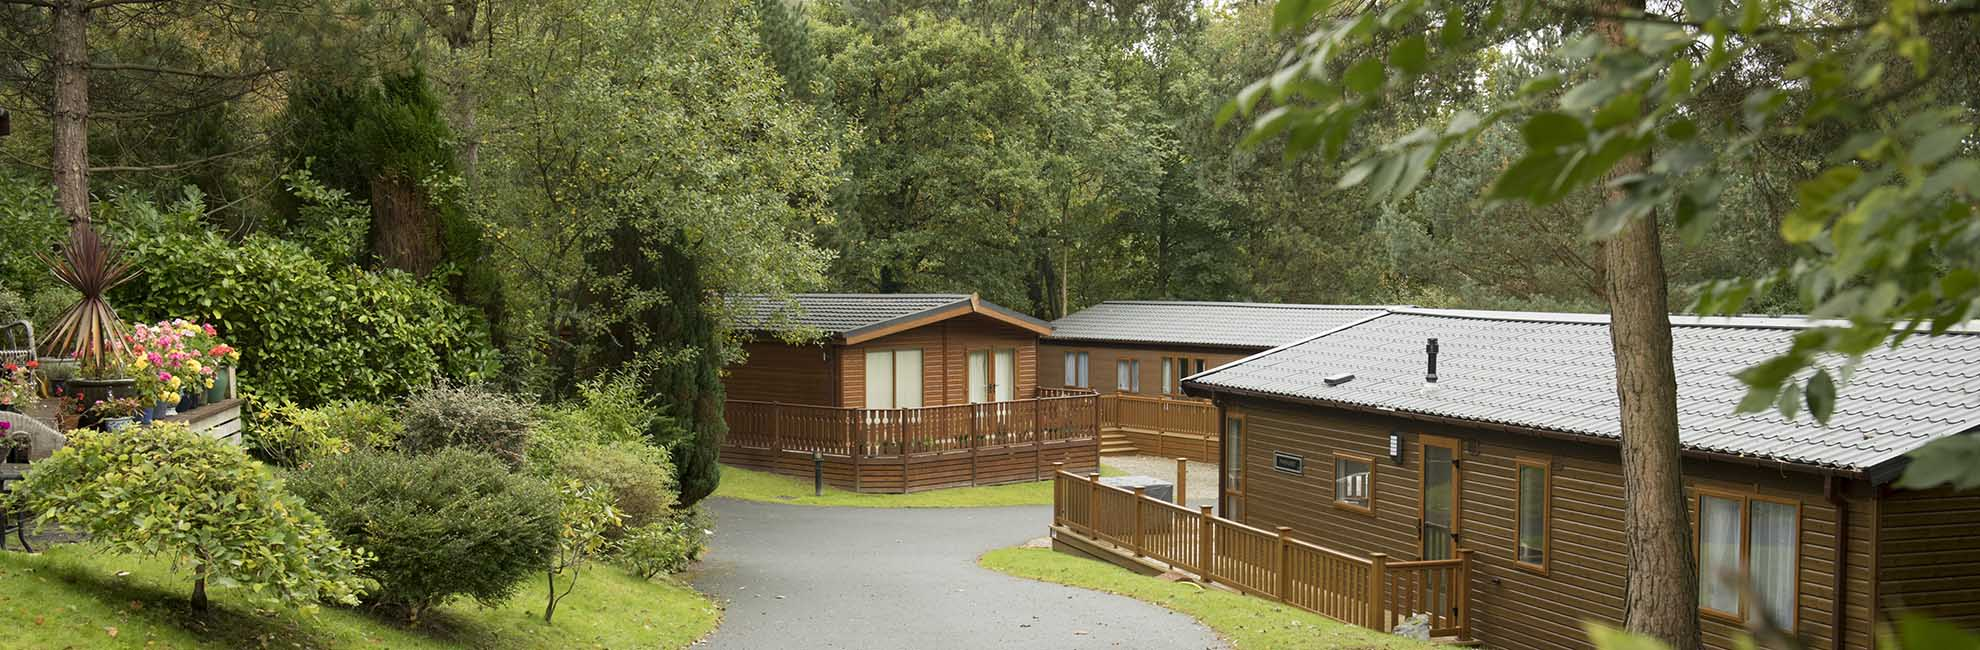 Wooden lodges surrounded by trees at Gatebeck Holiday Park